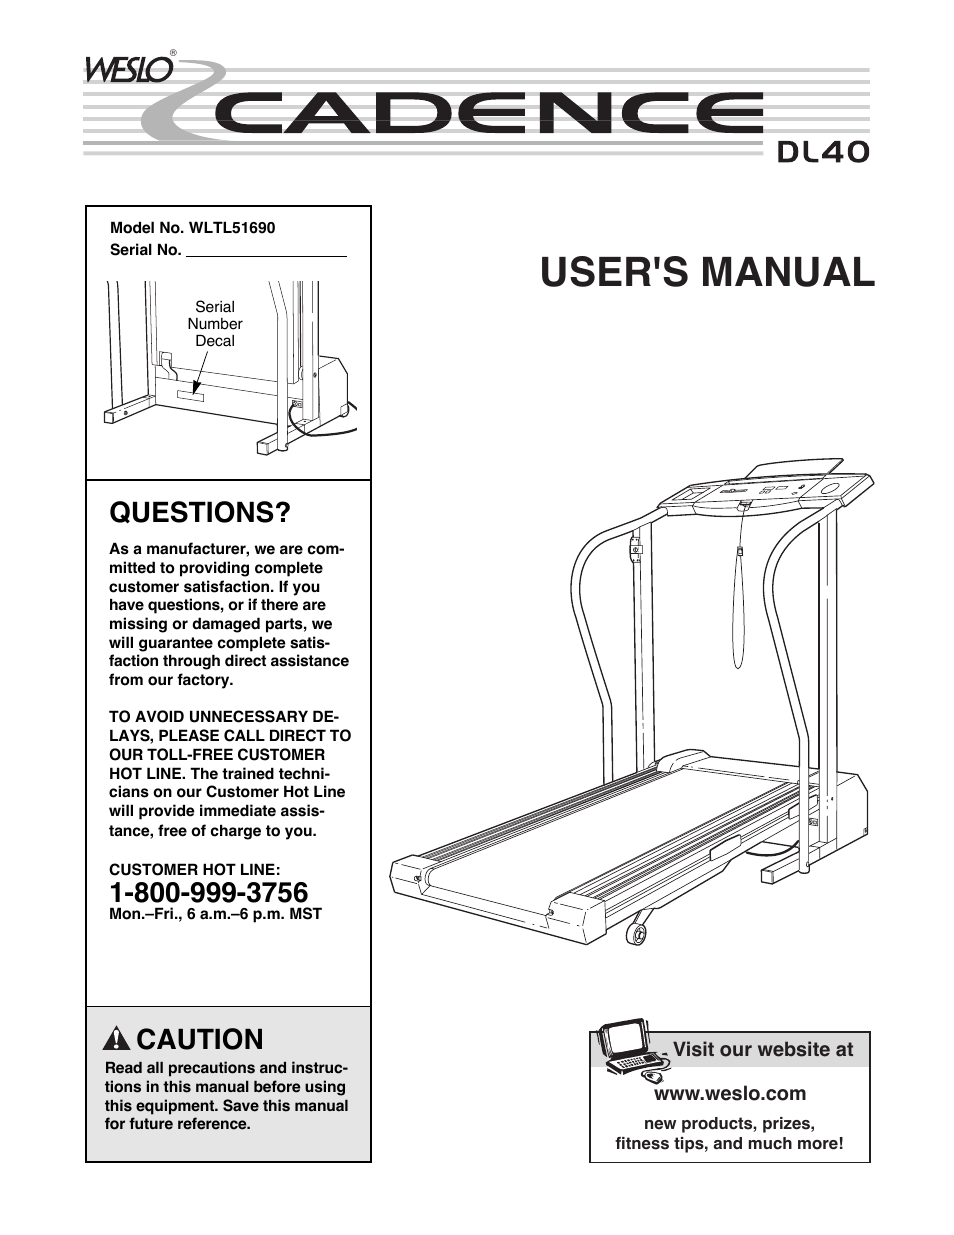 Weslo Cadence Dl40 User Manual 18 Pages Treadmill Wiring Diagram